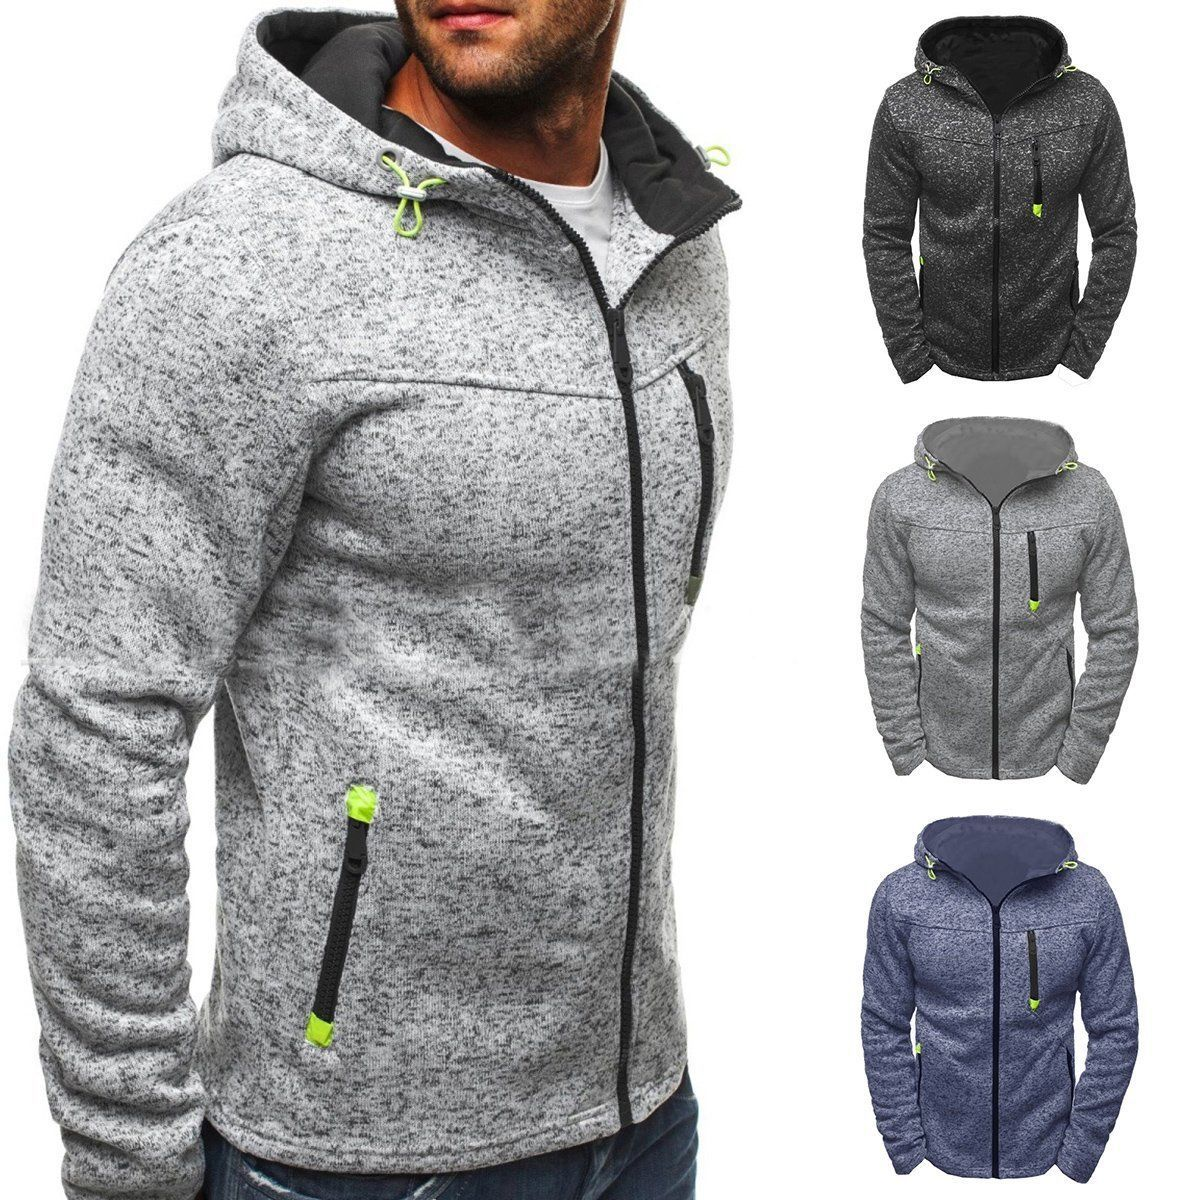 Men/'s Slim Pullover Hoodie Winter Warm Hooded Sweatshirt Coat Sweater Outwear